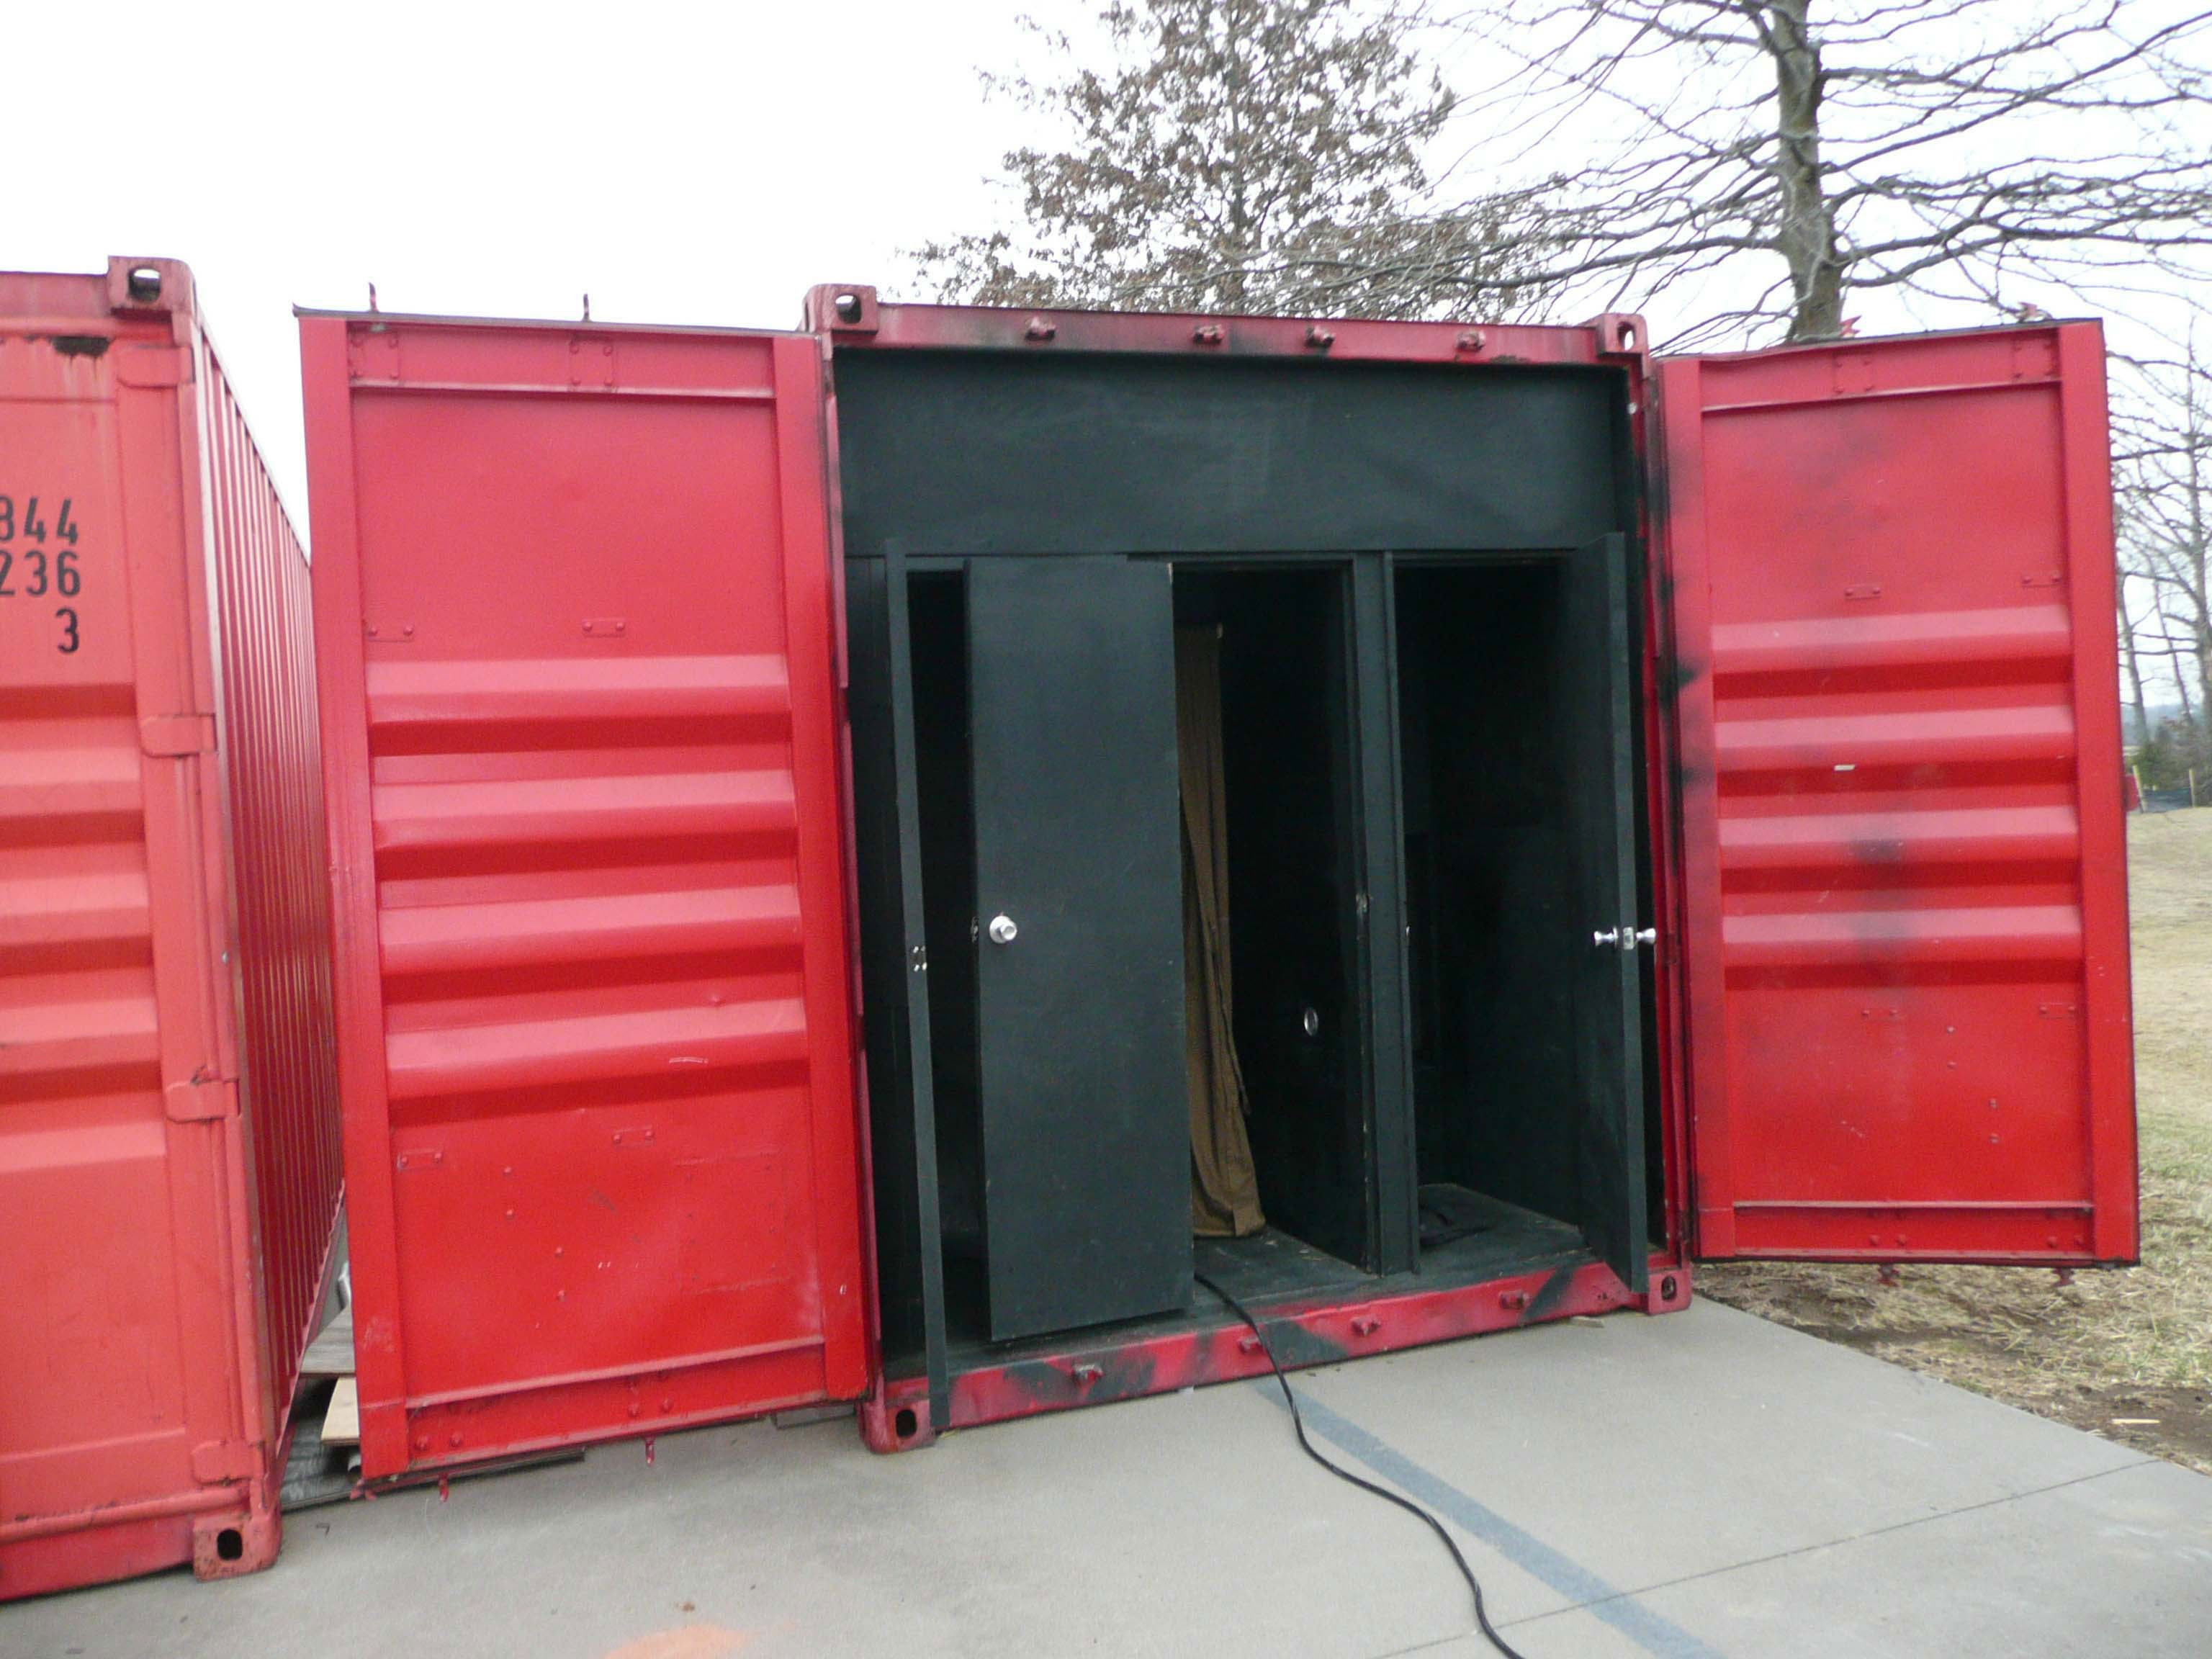 Maze practical drill trailer built inside a metal sea shipping container